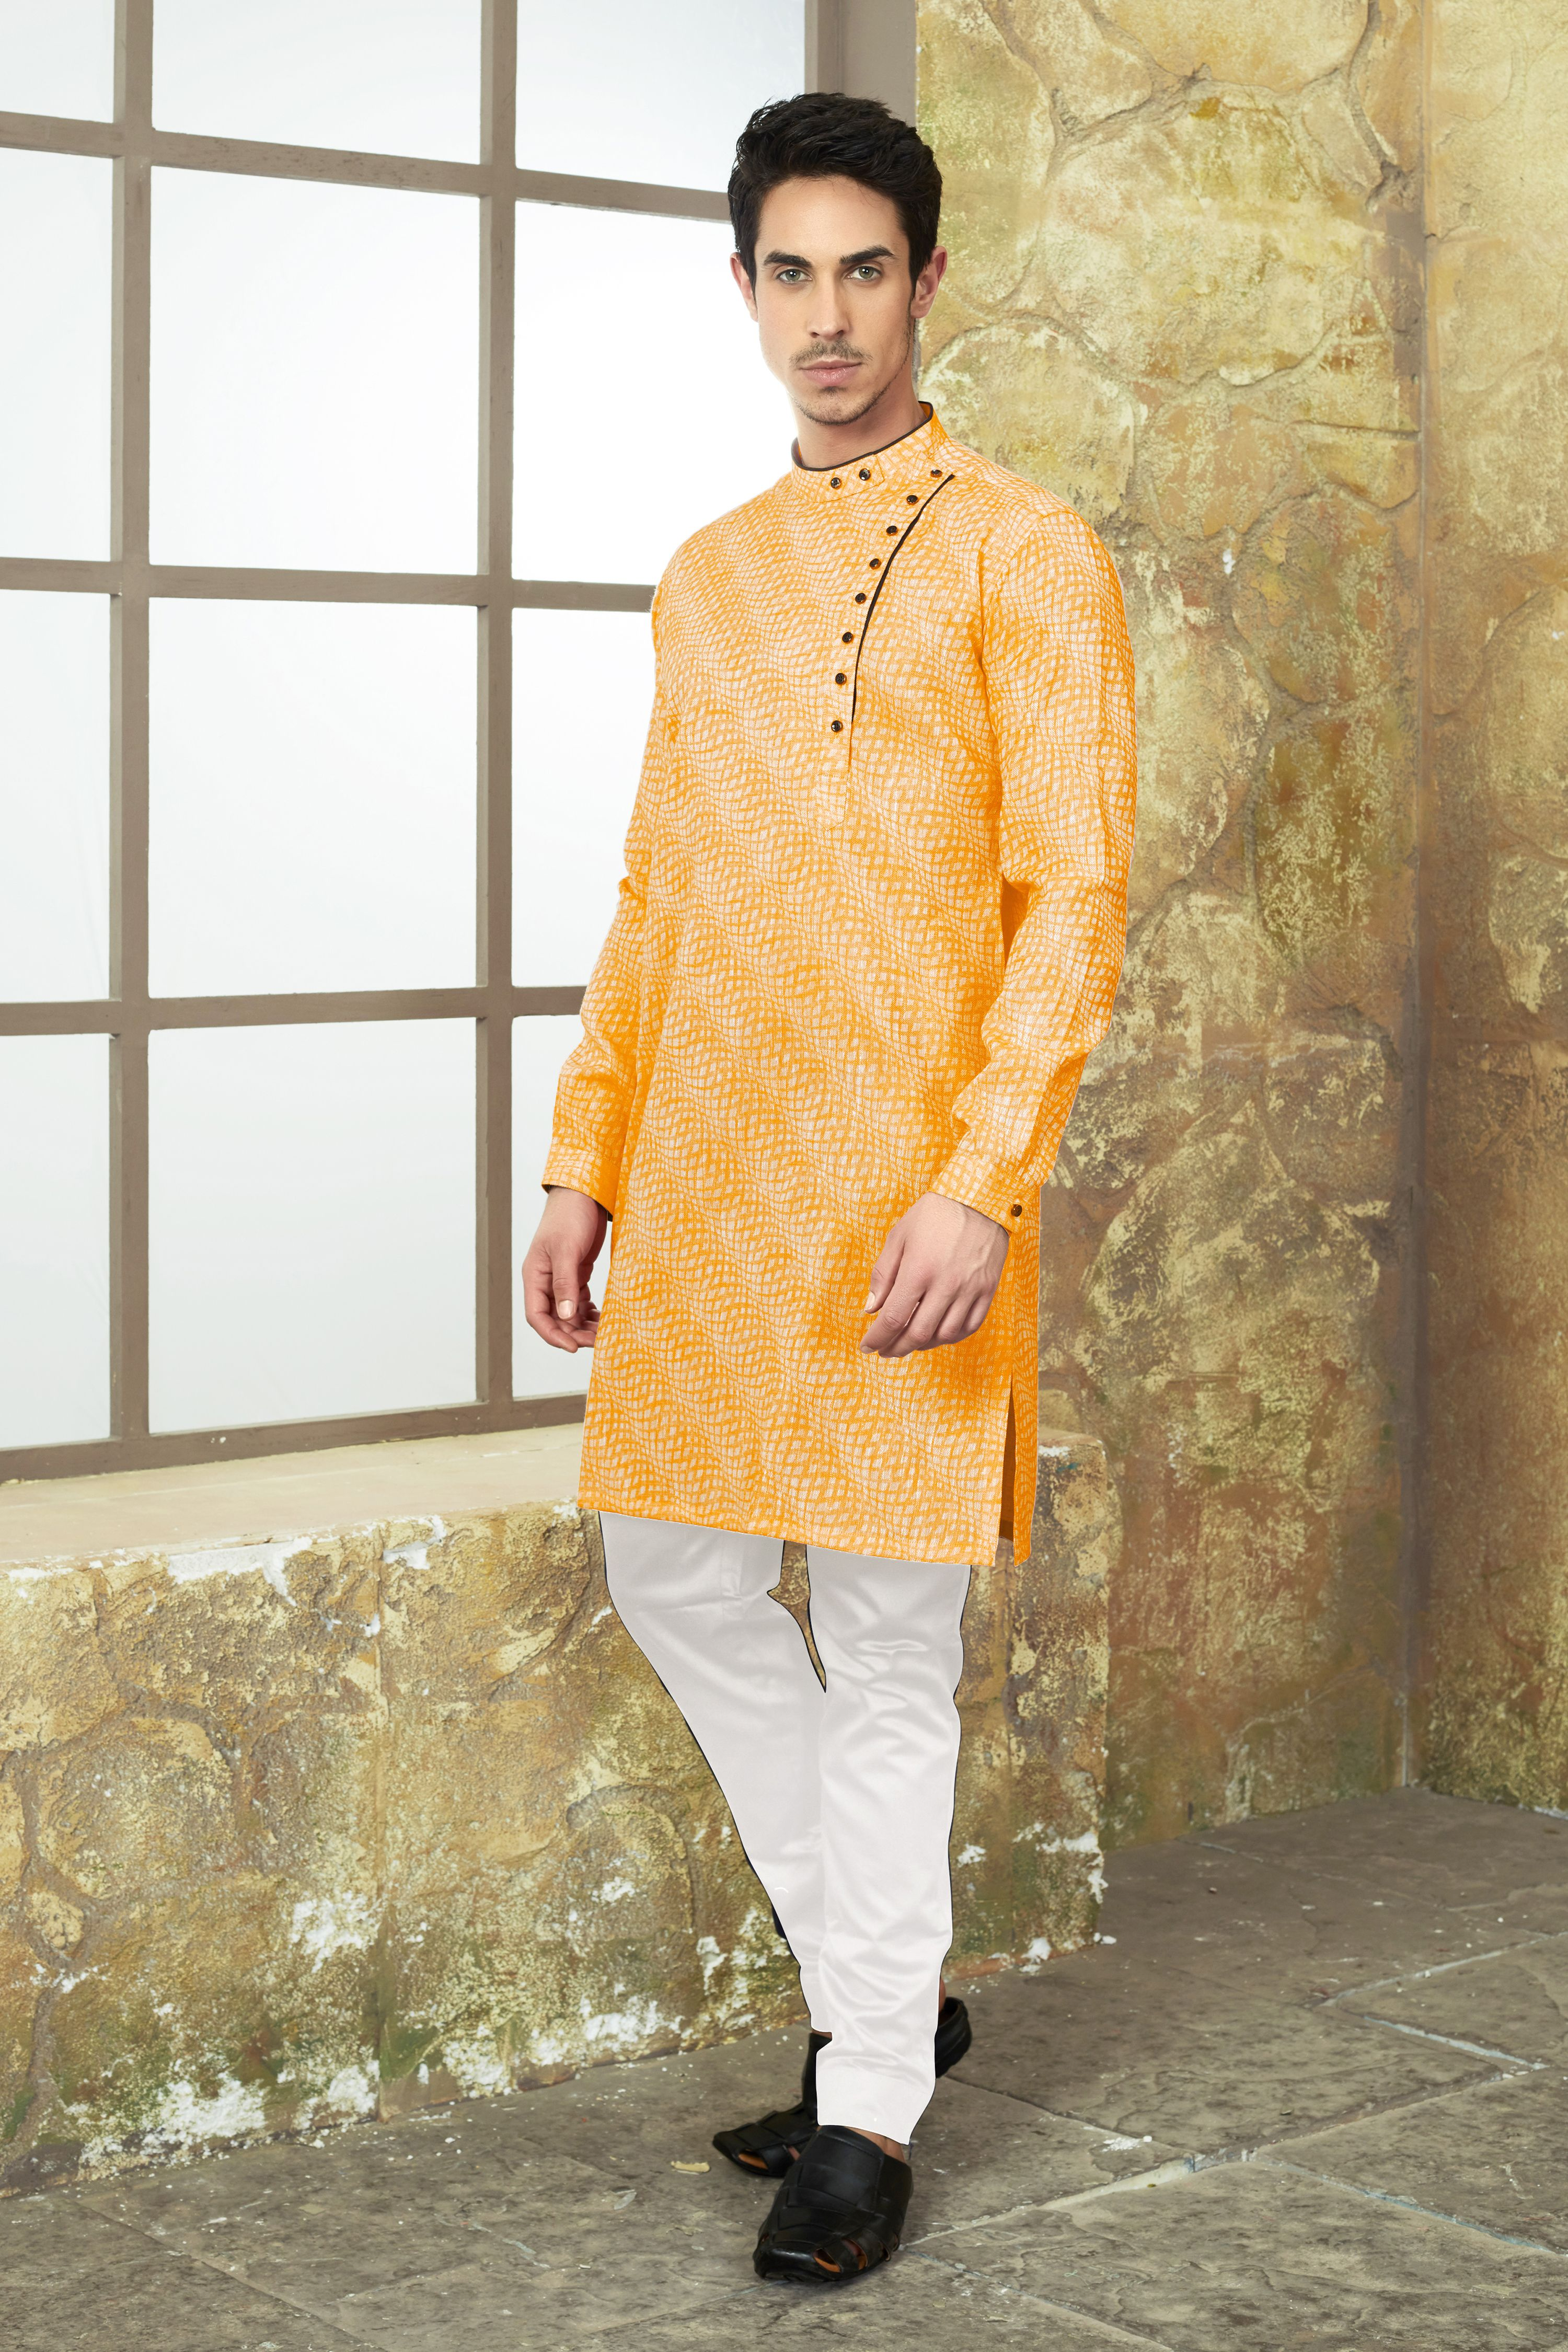 9c20a25ead Buy latest Indian wedding dresses for men online at Sachin's. We specialise  in Indian groom and ethnic outfit. We Deliver all our clothing across India  and ...